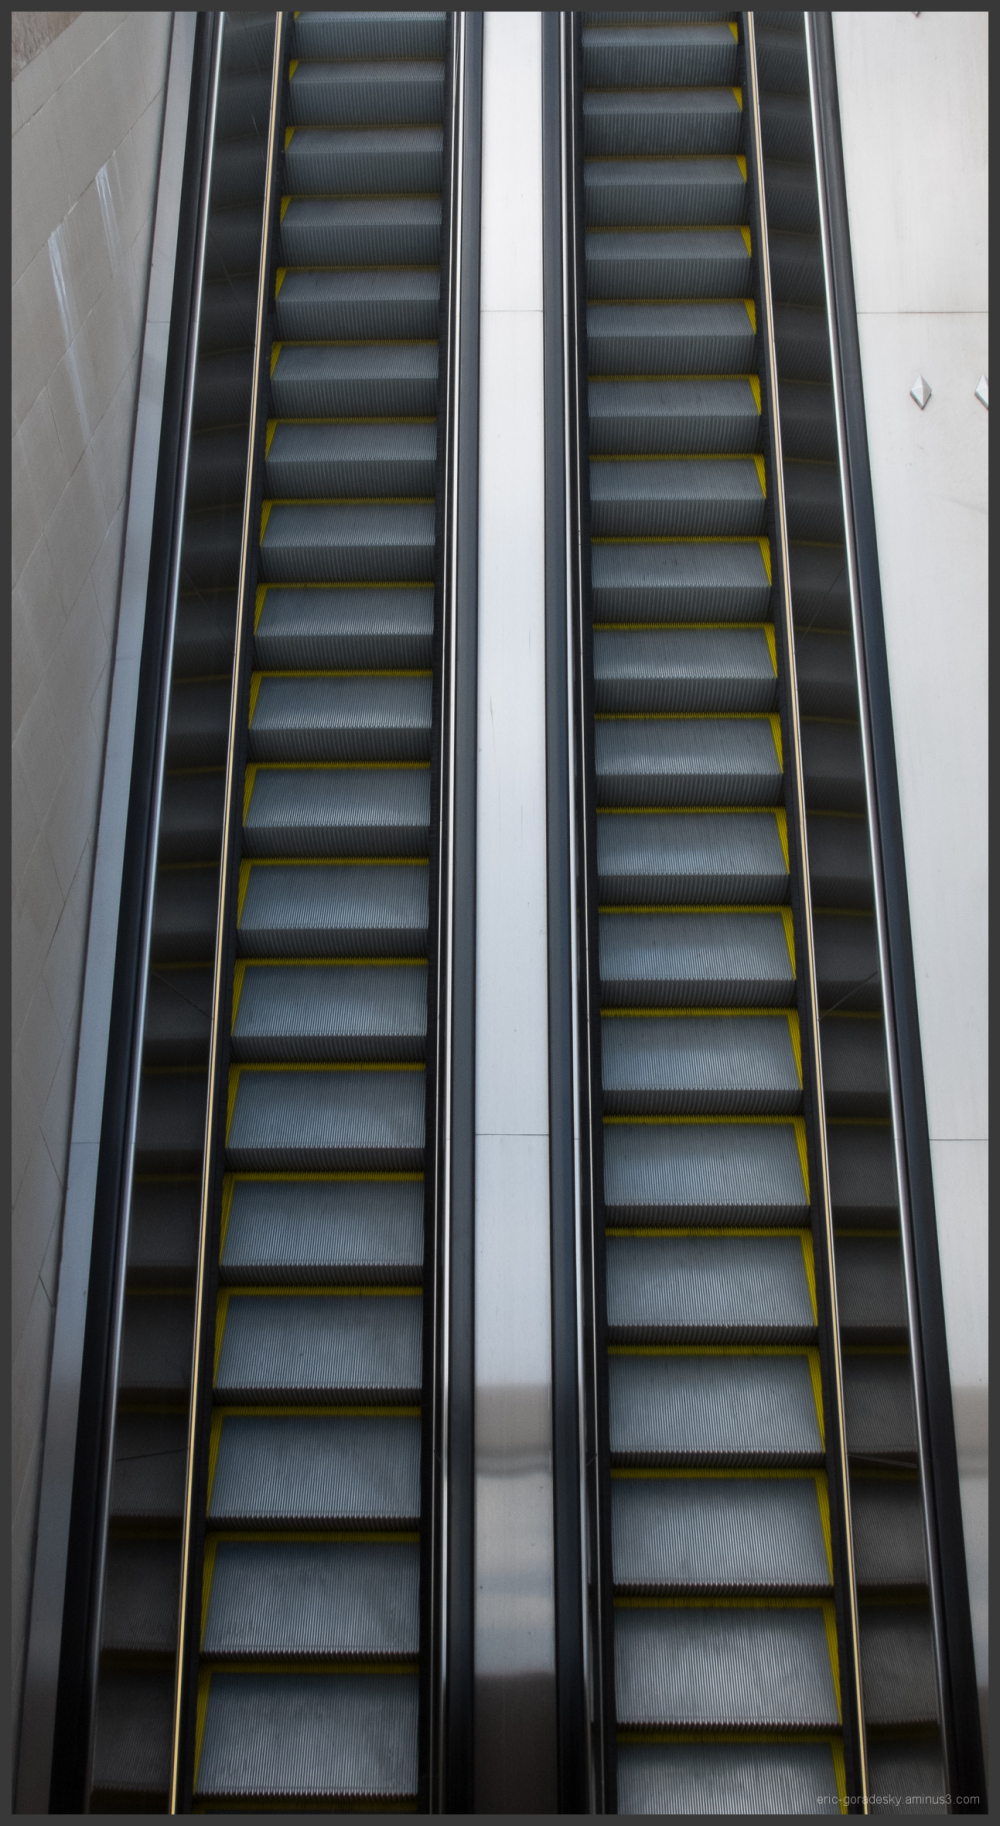 Mechanical Staircase # 2